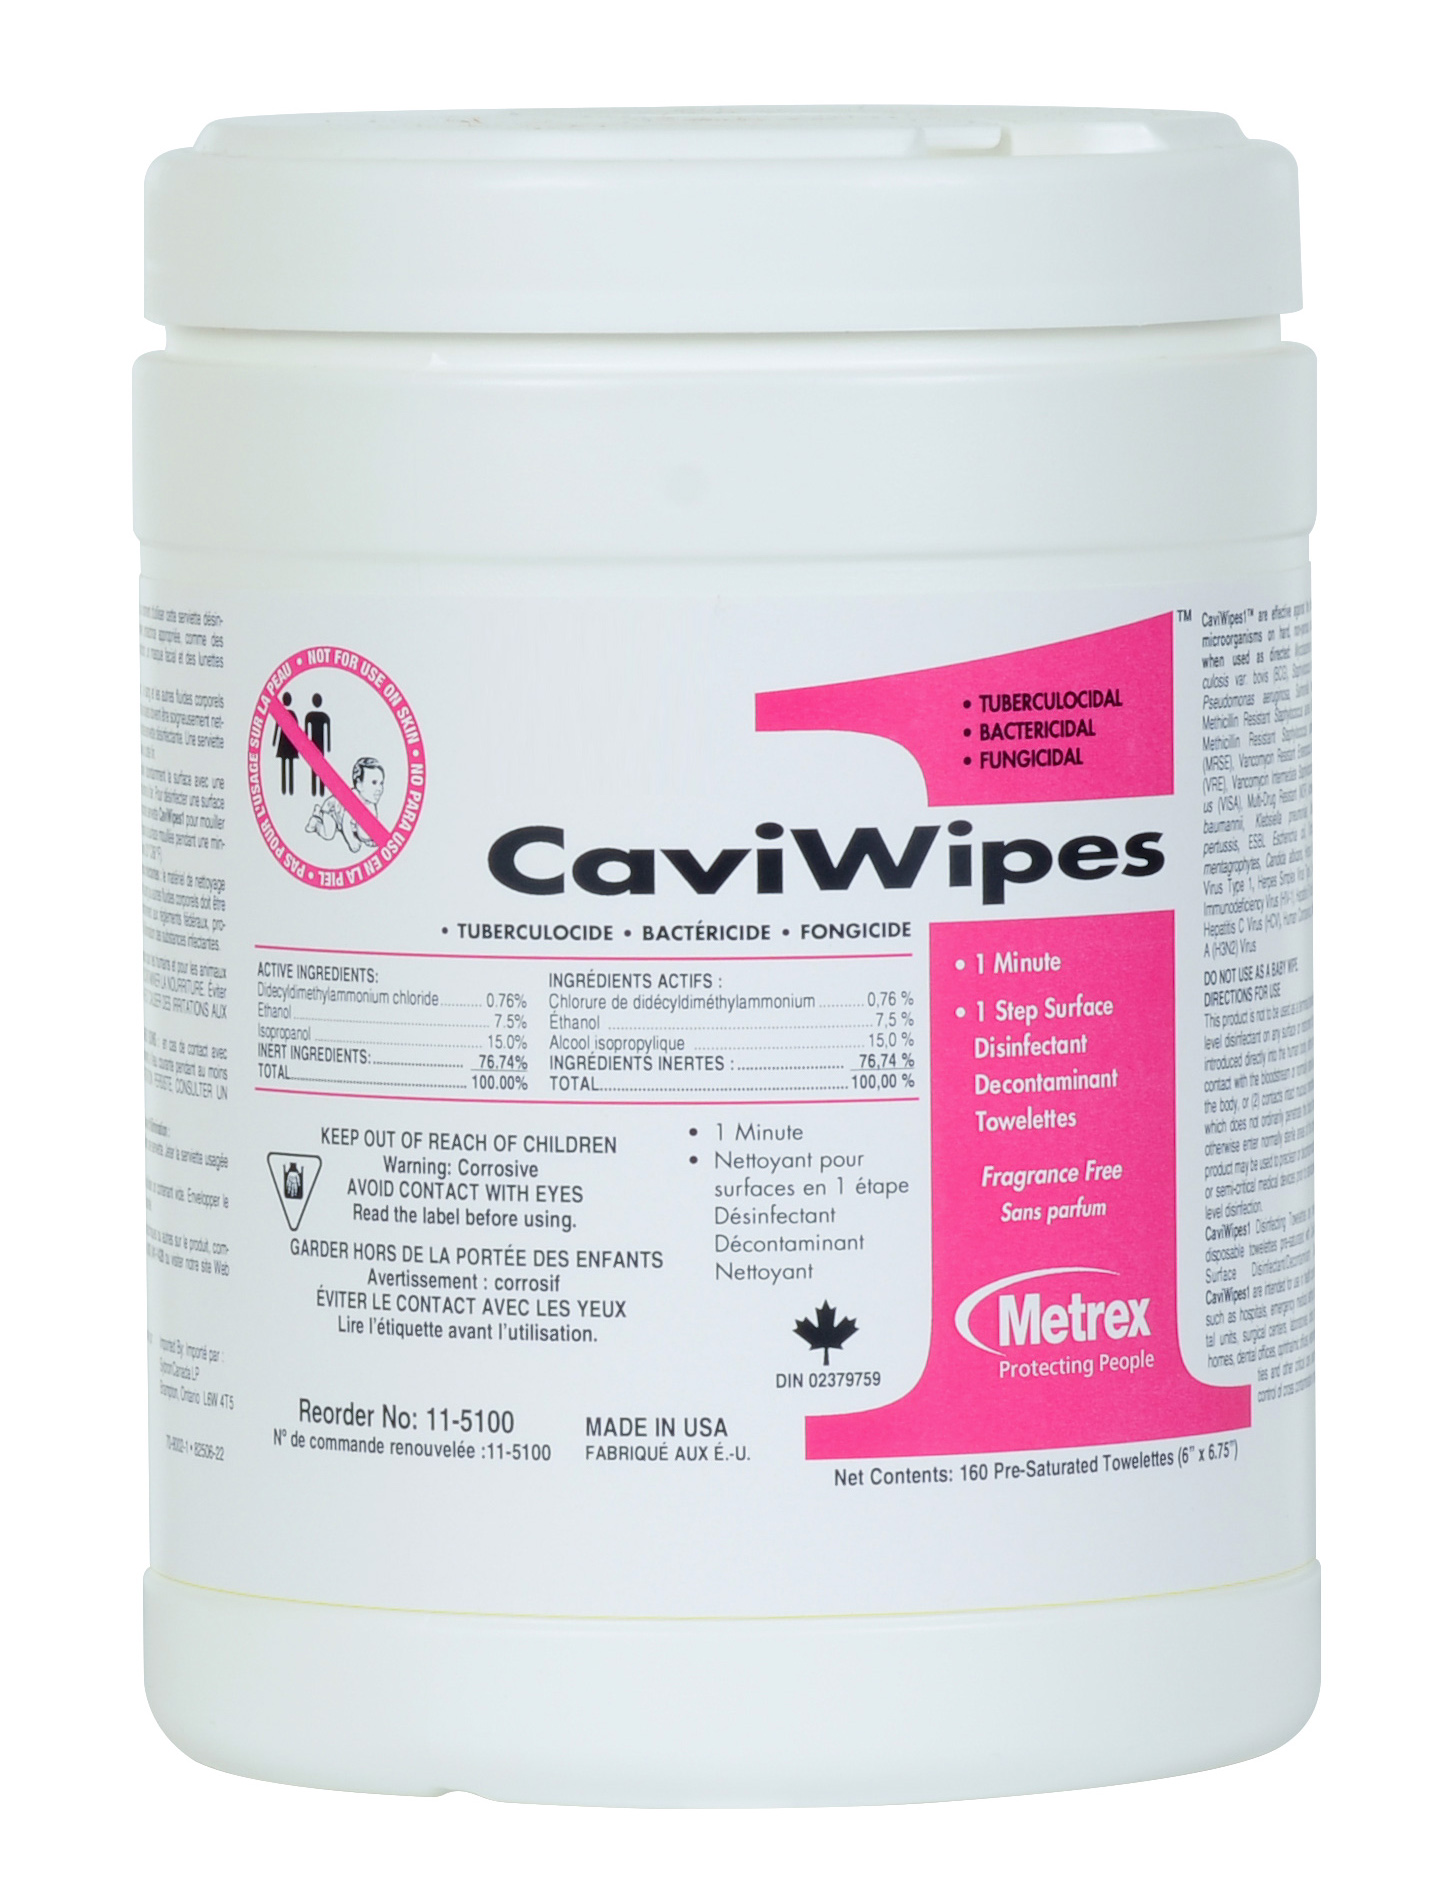 CaviWipes1 Towelettes Large 6x6.75 160pk